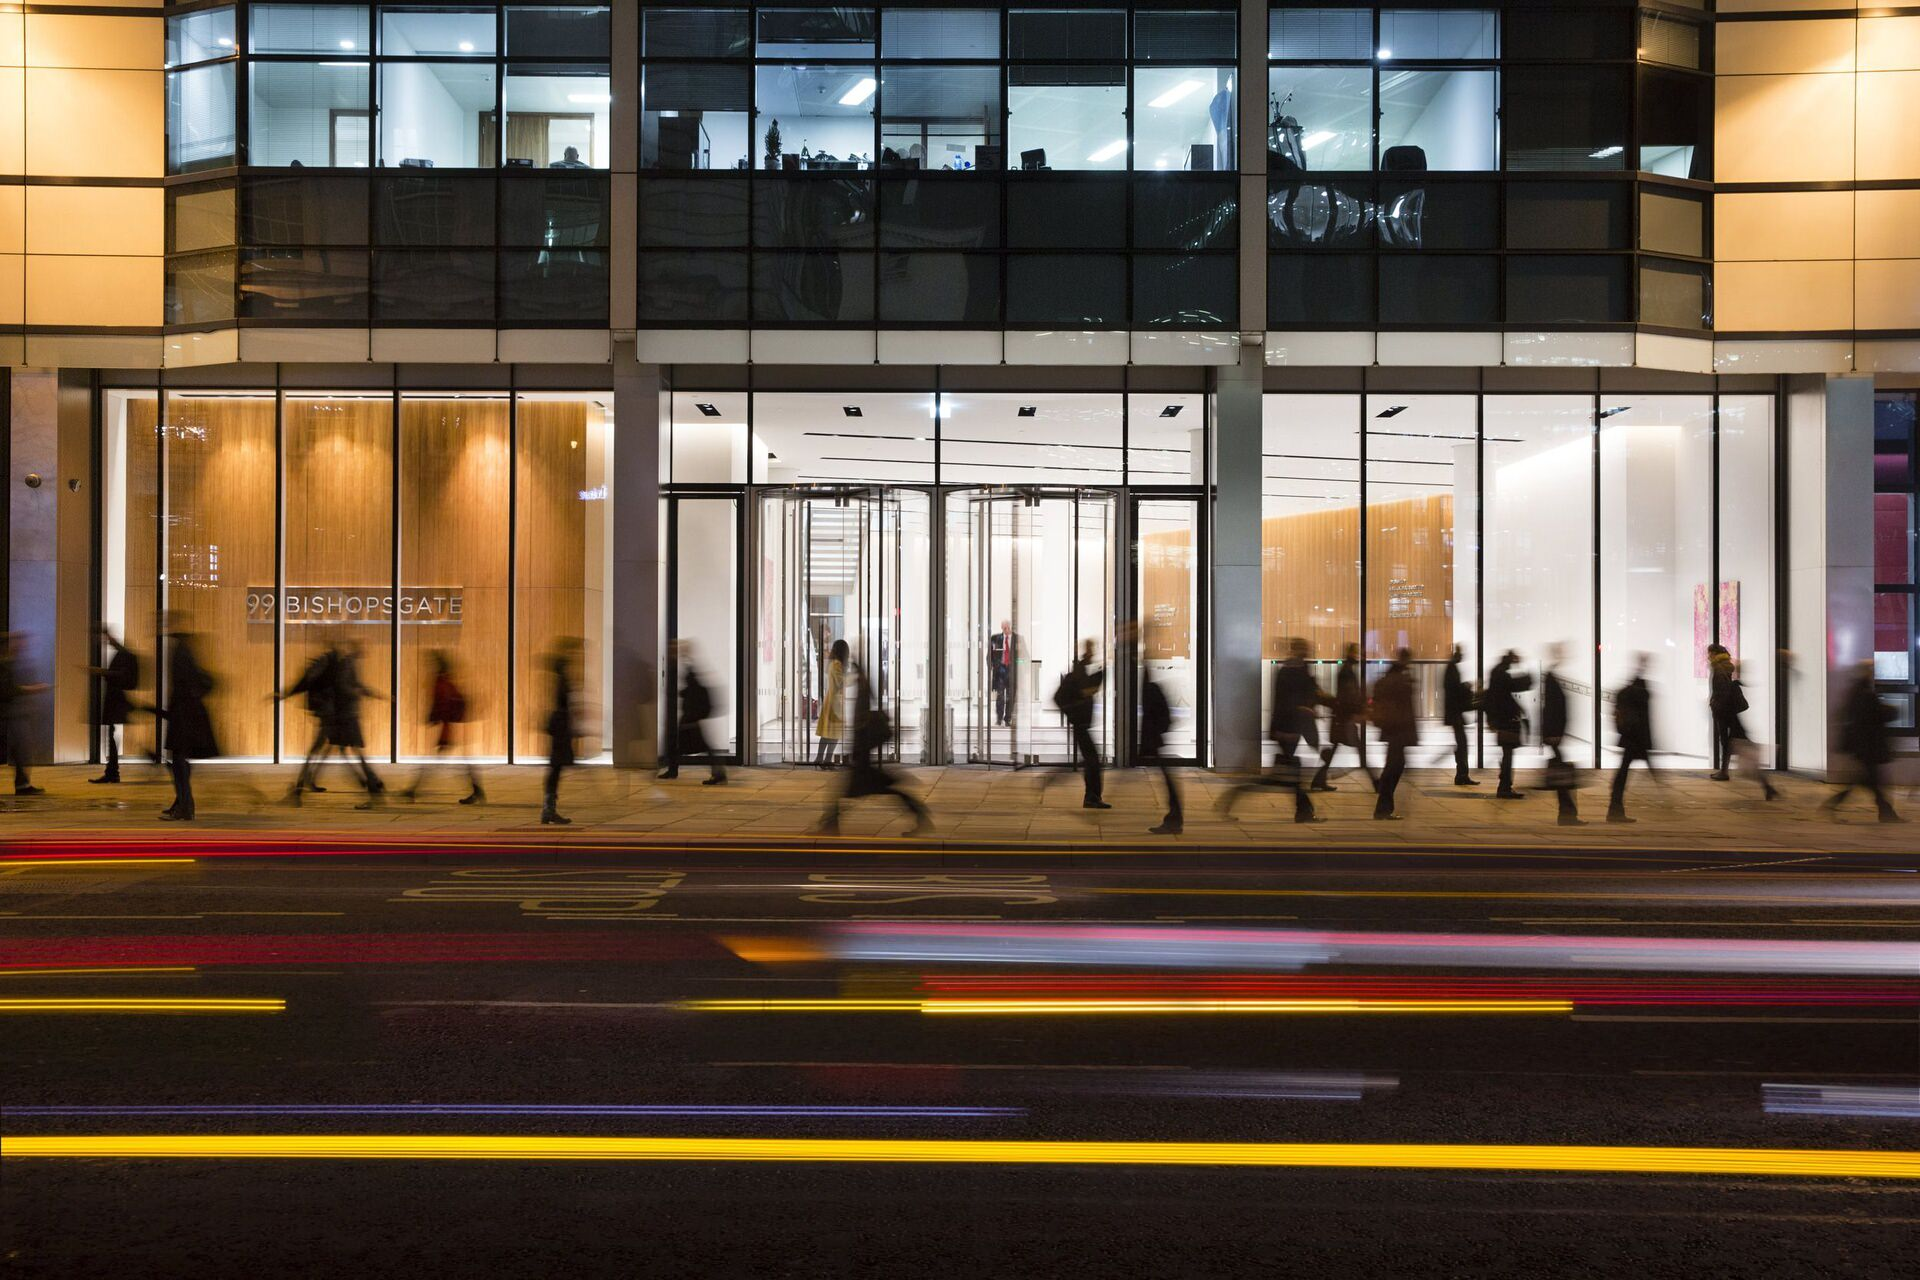 A crowd of people walking along the sidewalk that is in front of a building with glass panels.